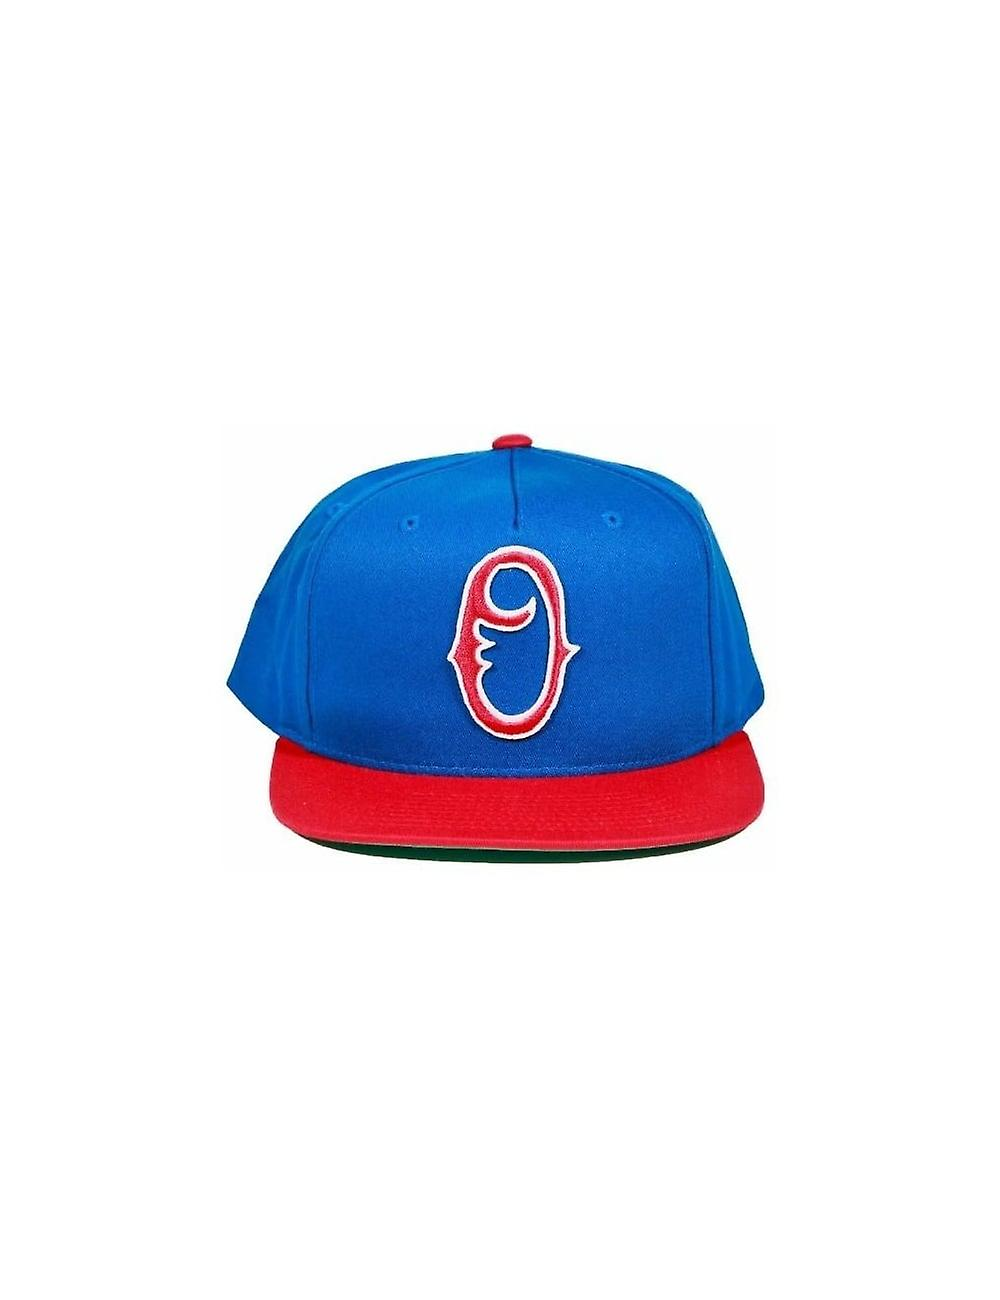 Obey Clothing Staple Snapback - Blue red  190dd3ac619f